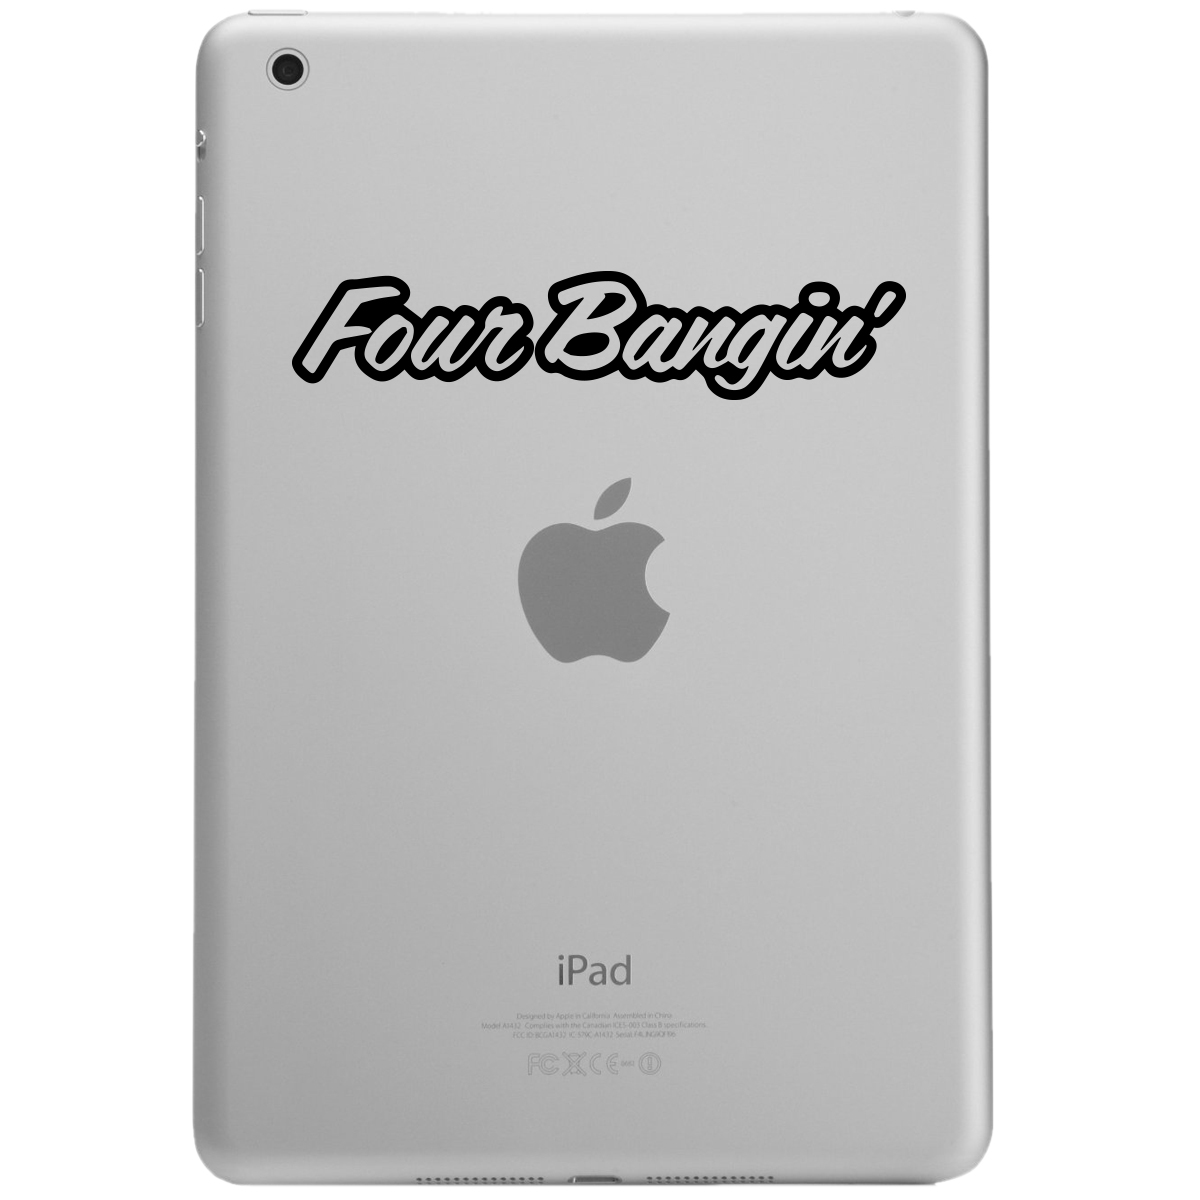 Four Bangin Engine 4 Cylinder JDM iPad Tablet Vinyl Sticker Decal